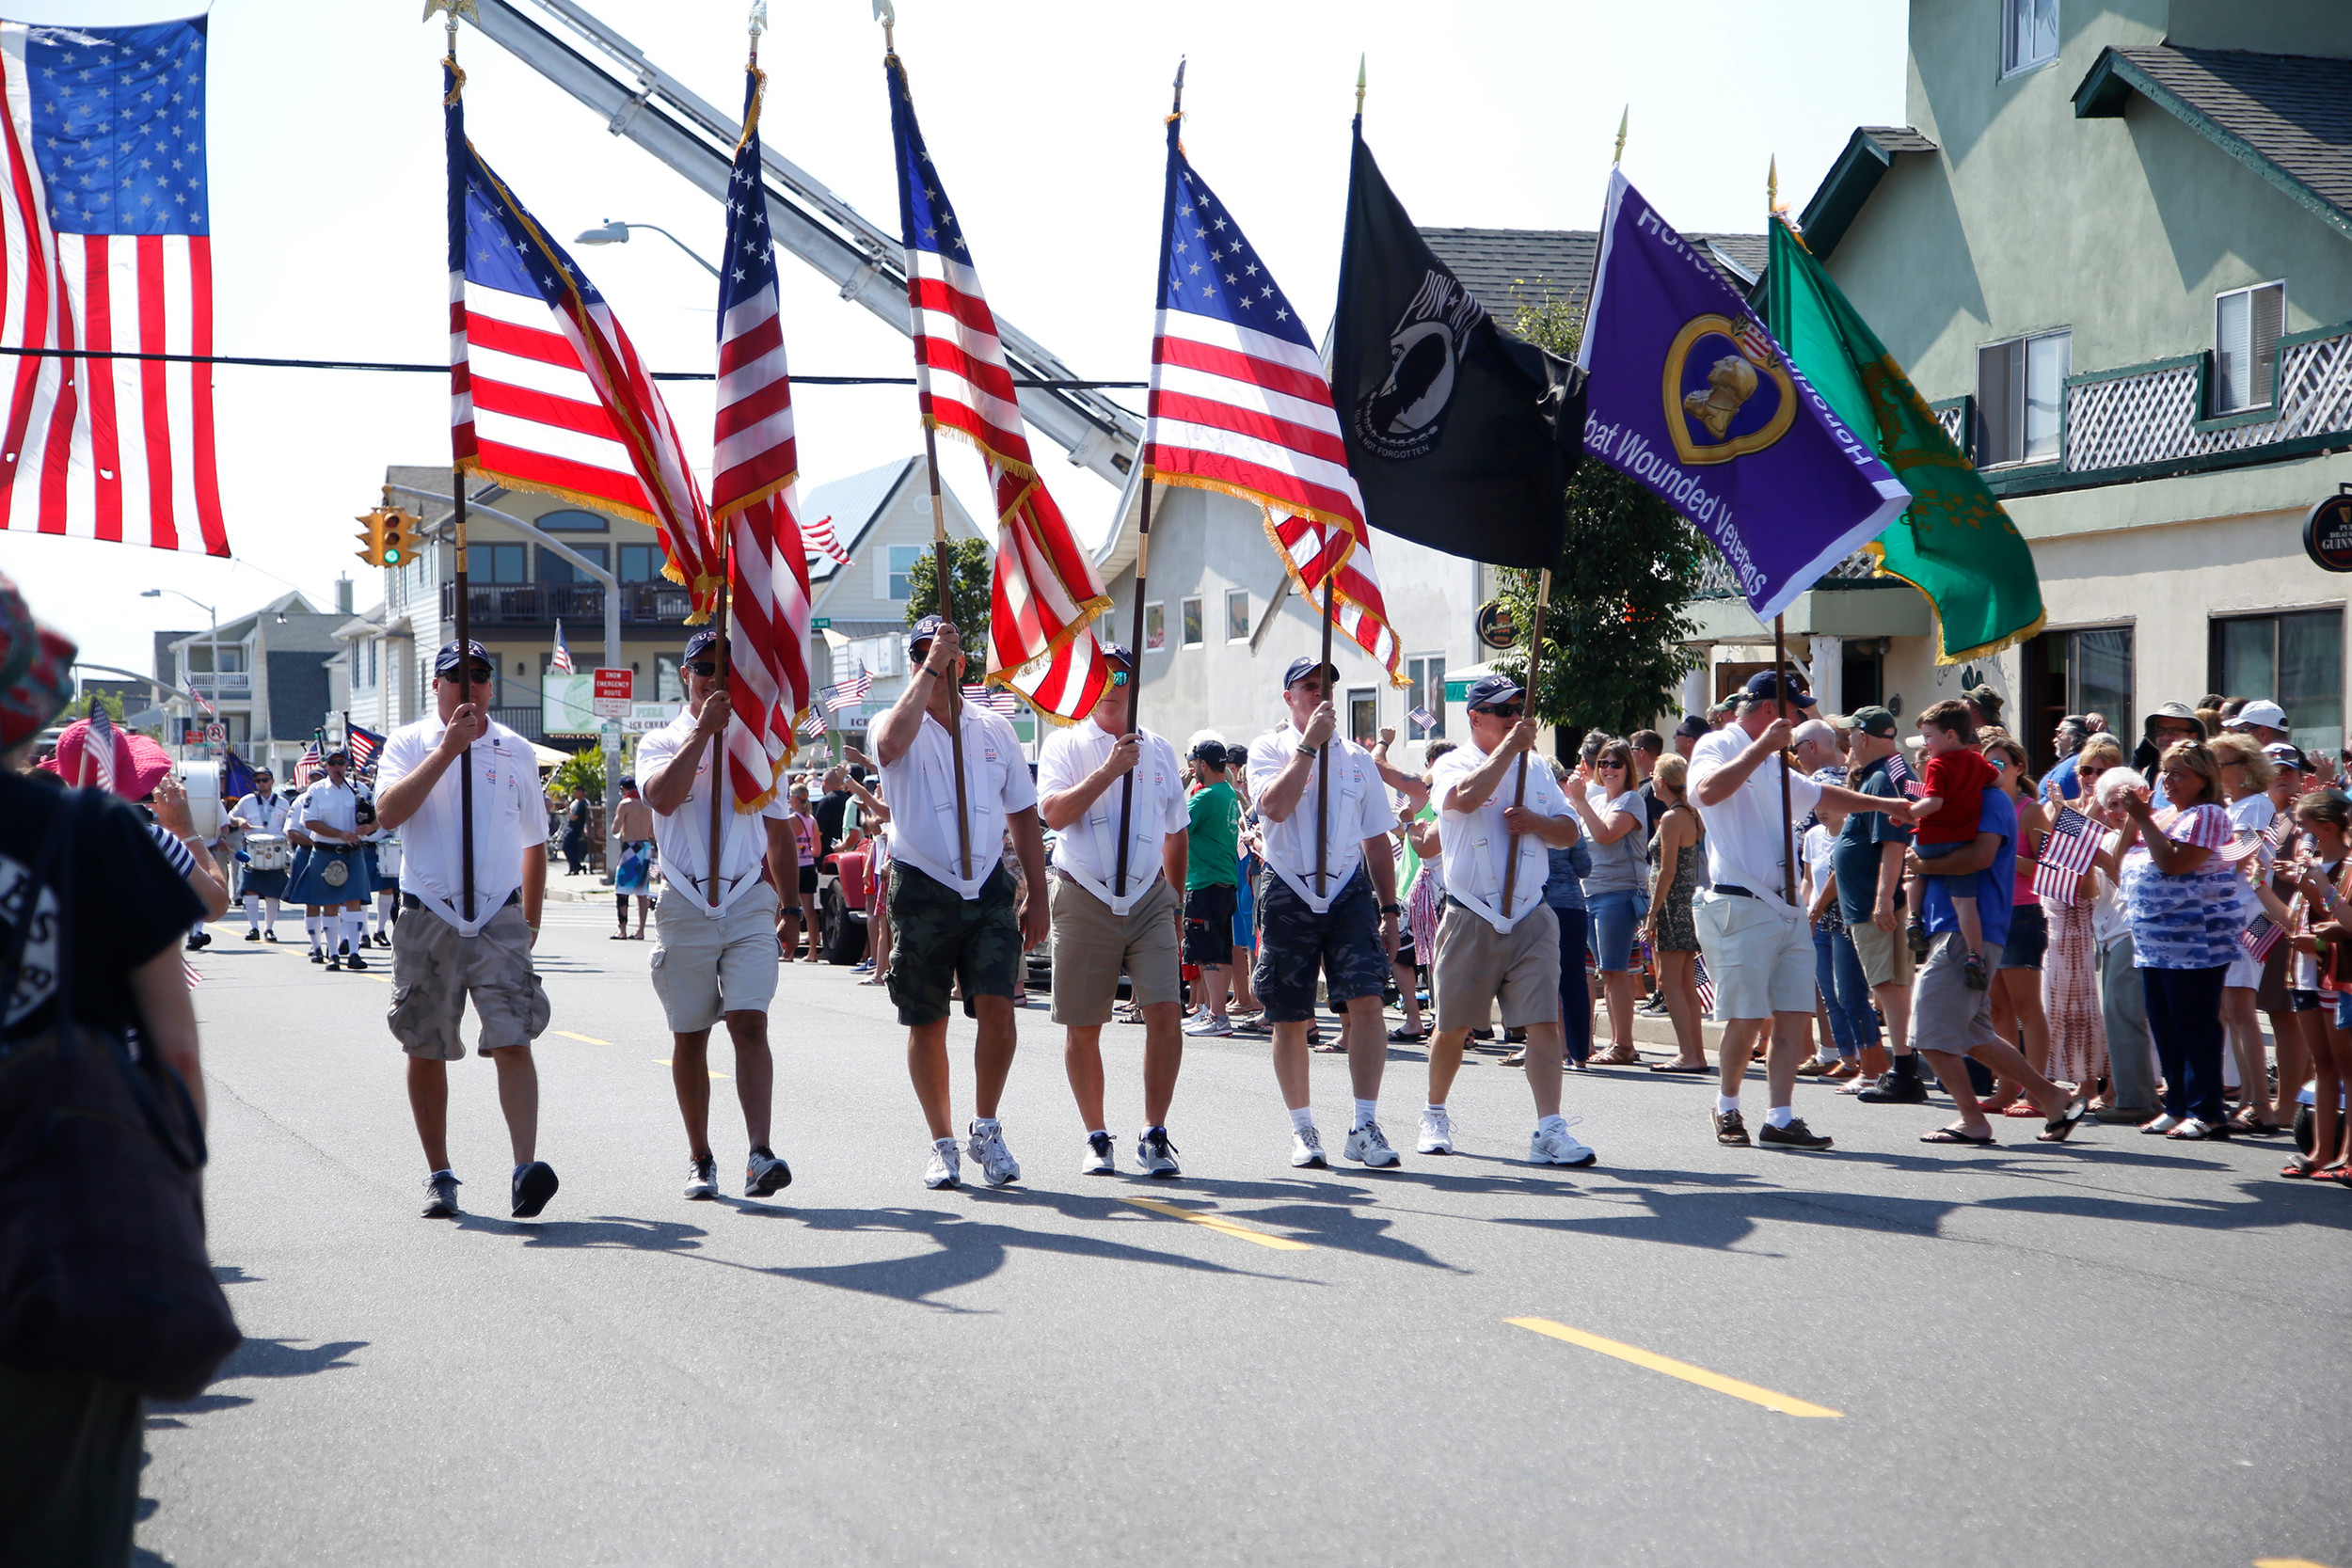 The local Veterans for Foreign Wars and other military service organizations marched in the parade with wounded veterans visiting Long Beach.